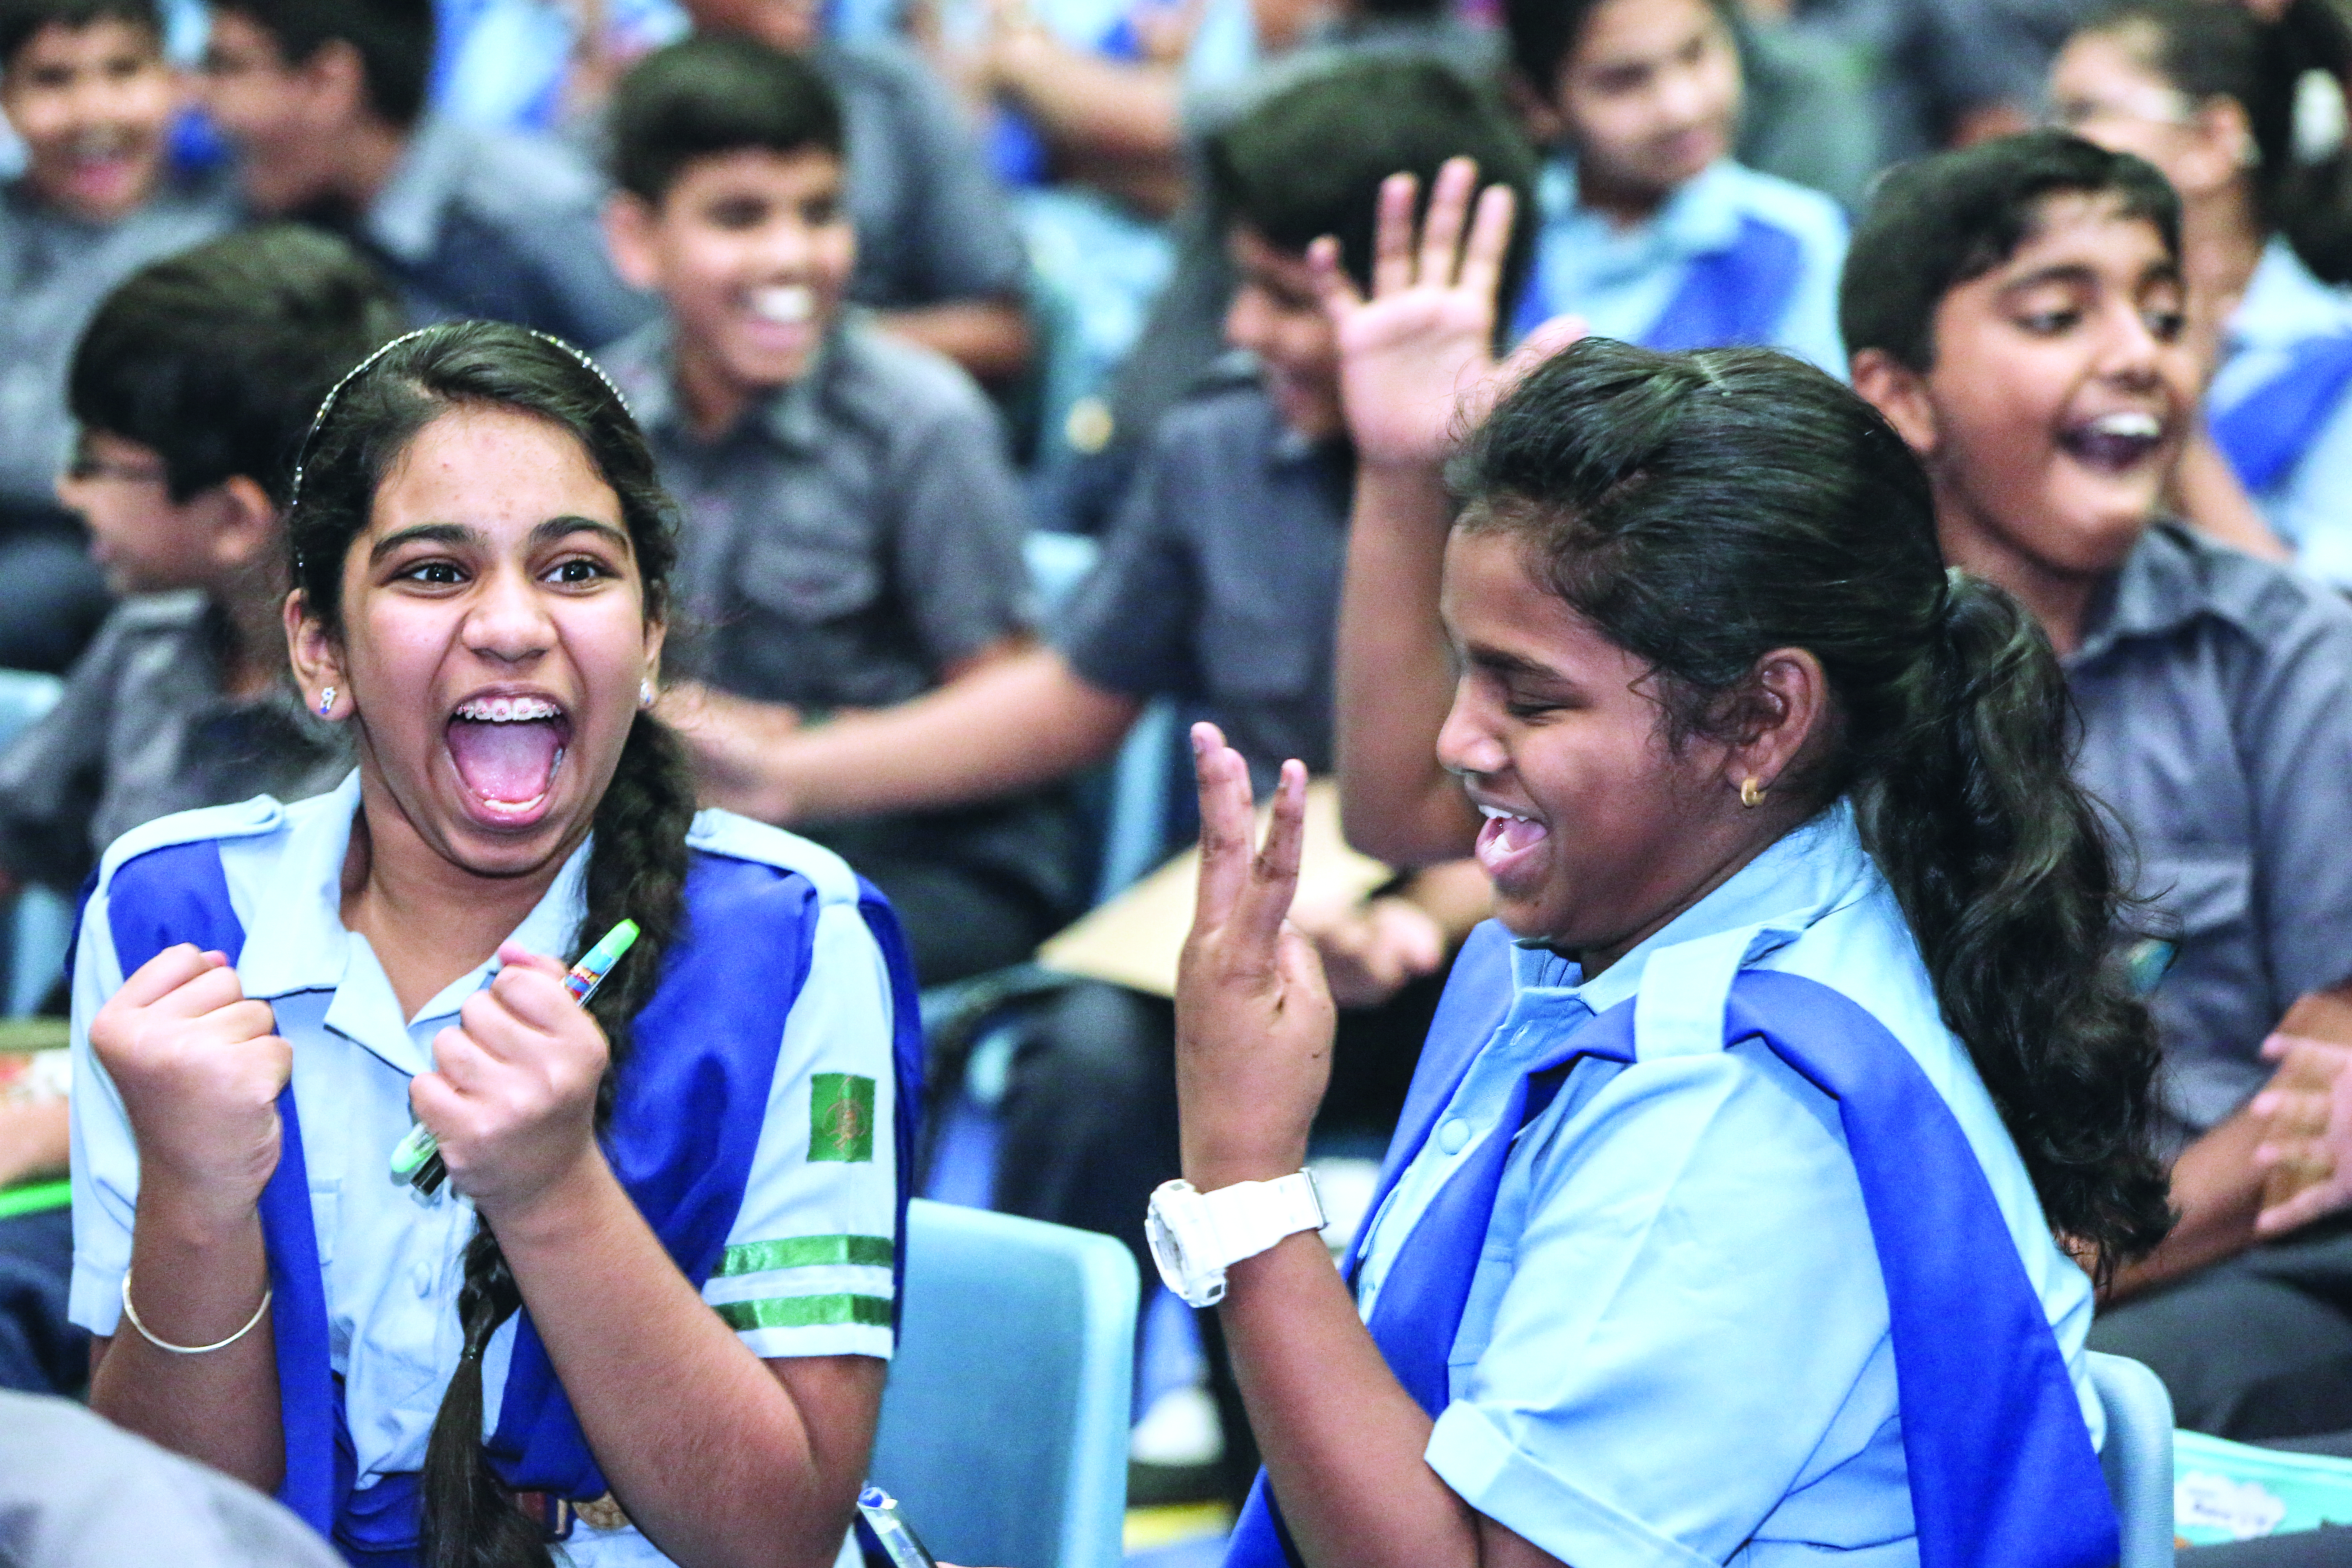 Times of Oman quiz challenge reaches Indian School Muscat